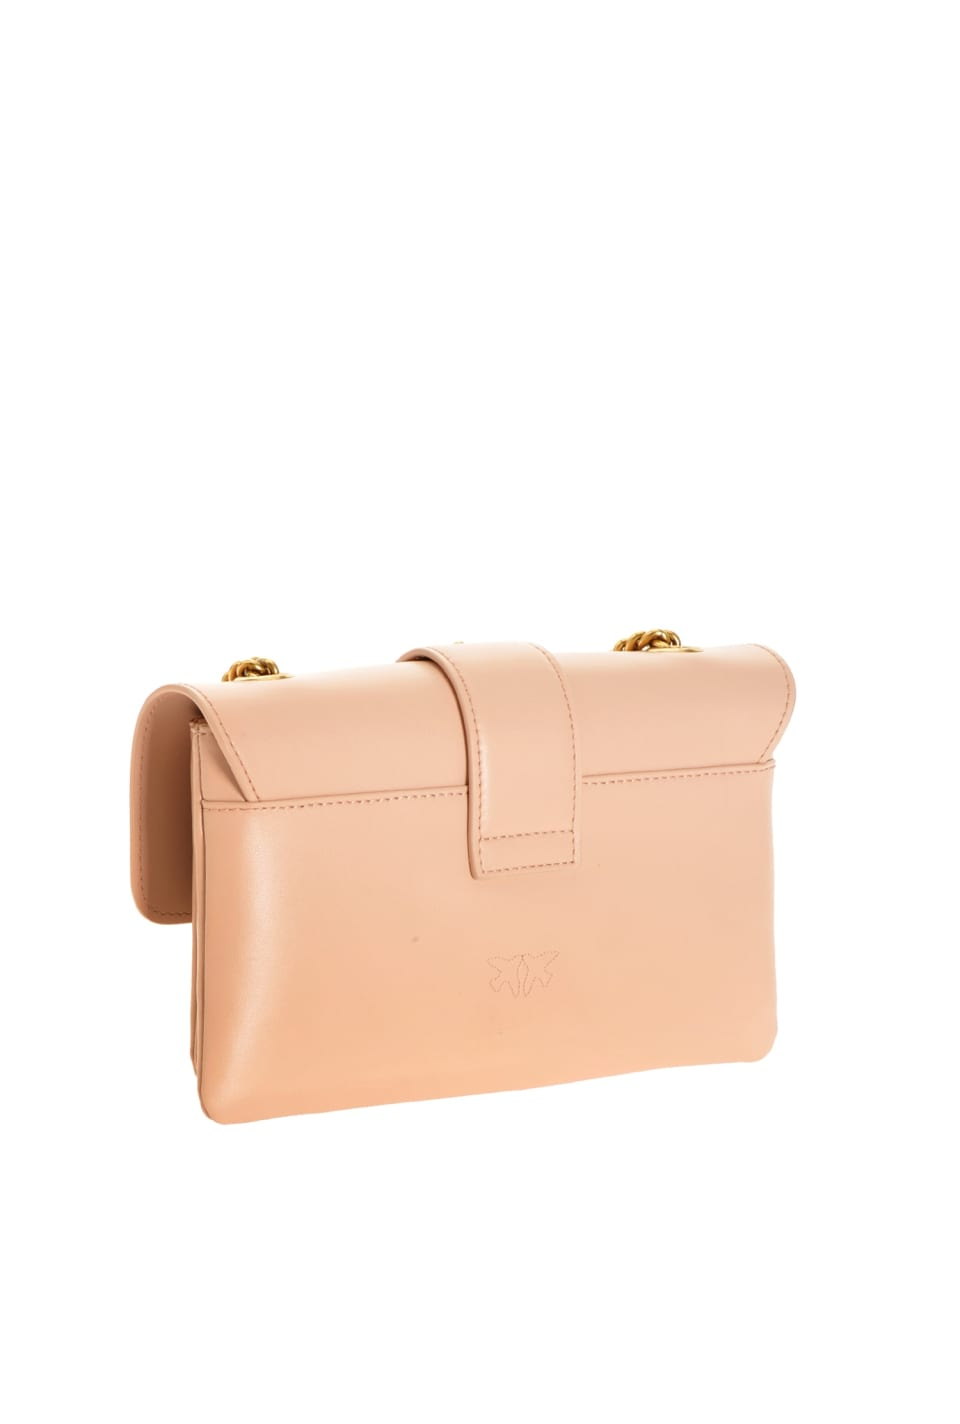 Mini Love Bag Soft Simply in tumbled leather - Pinko